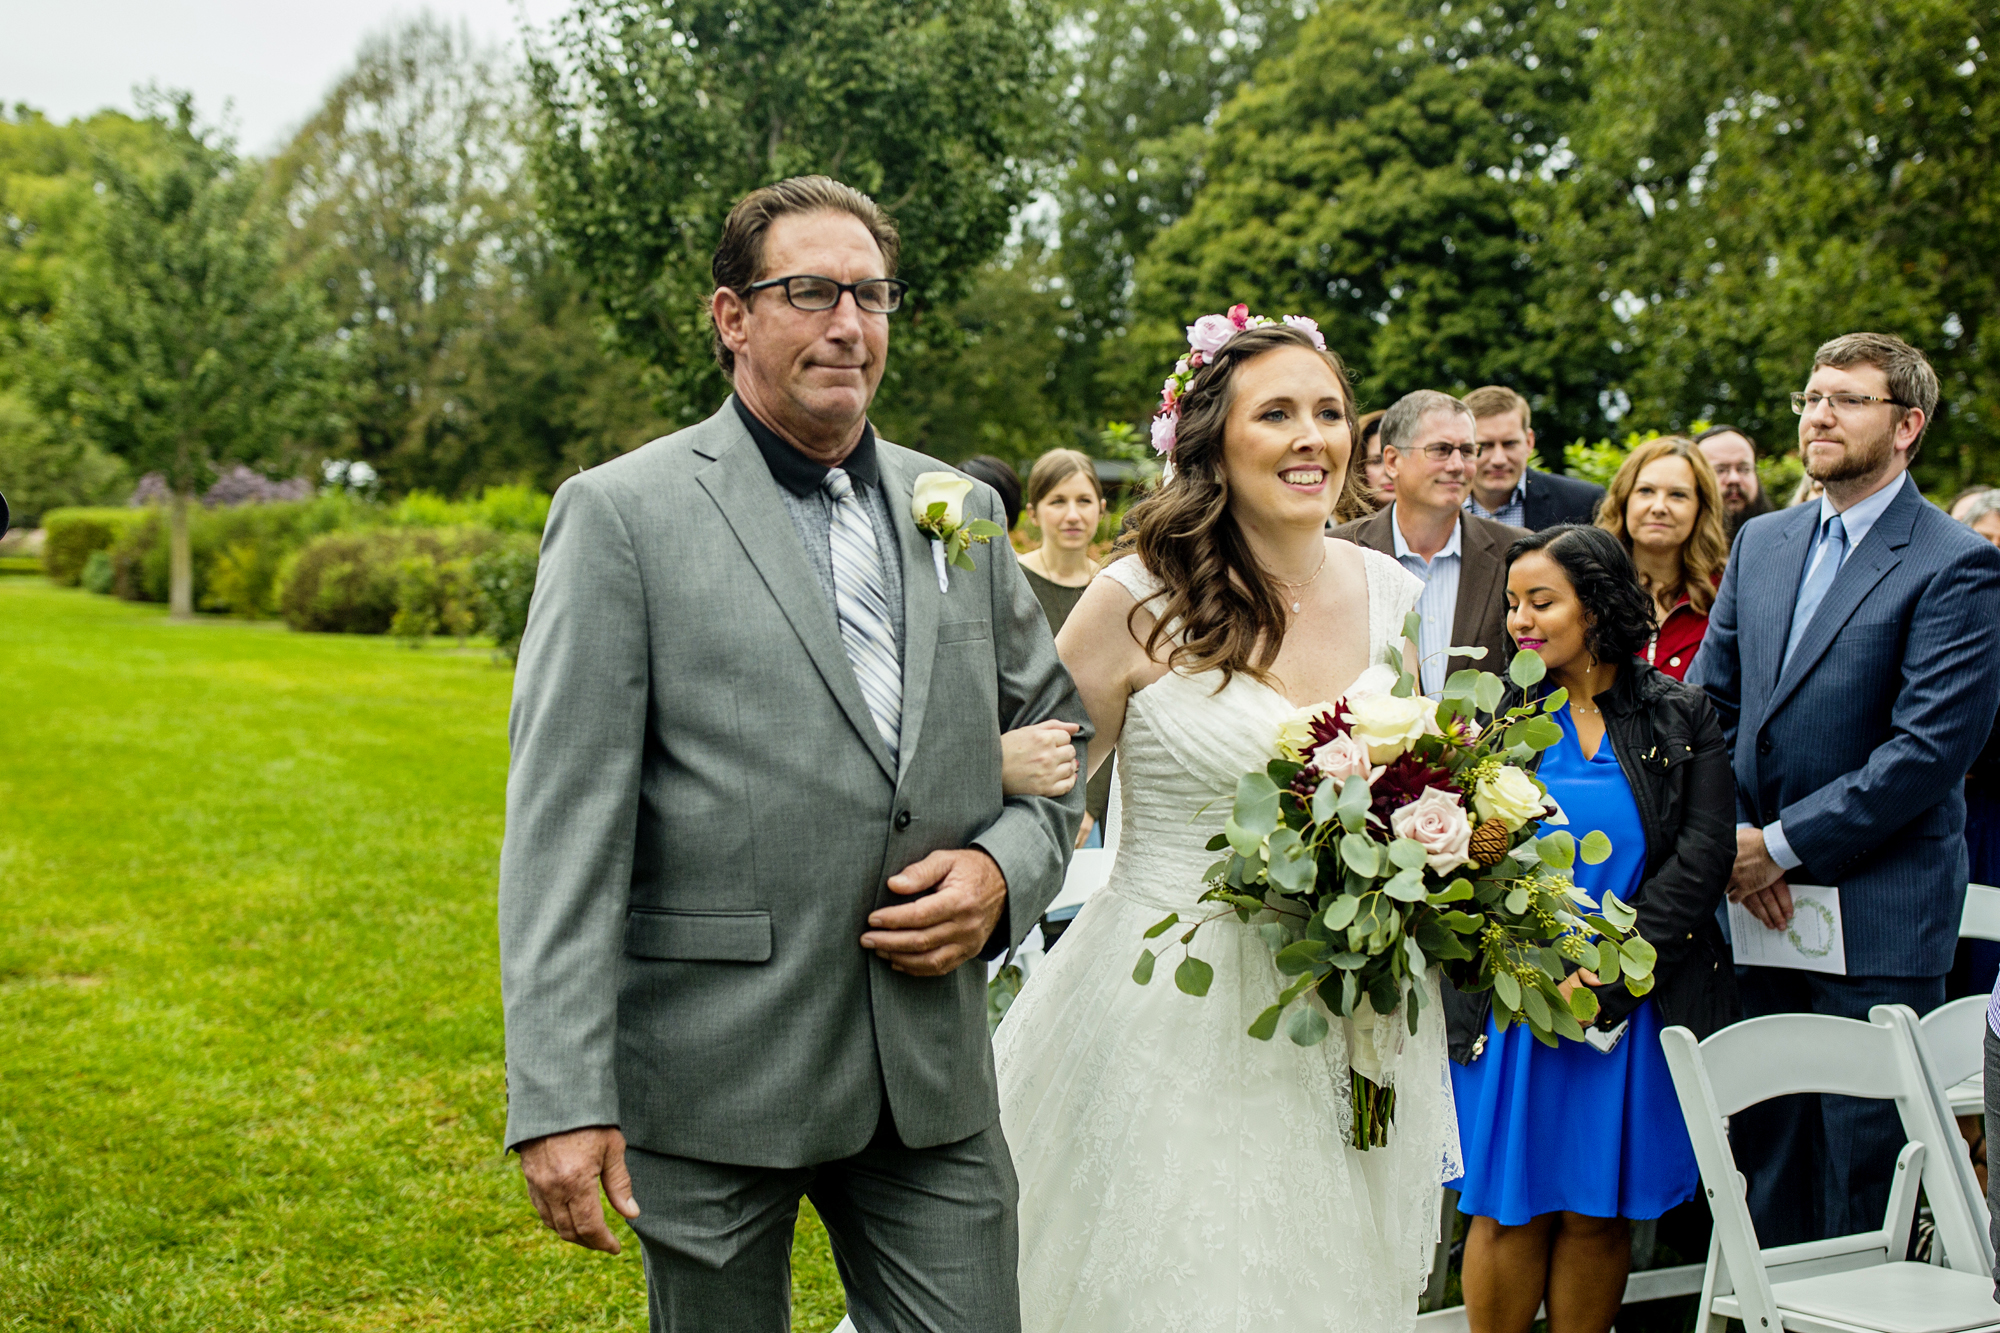 Seriously_Sabrina_Photography_Lisle_Illinois_Morton_Arboretum_Wedding_Day_Gowen64.jpg